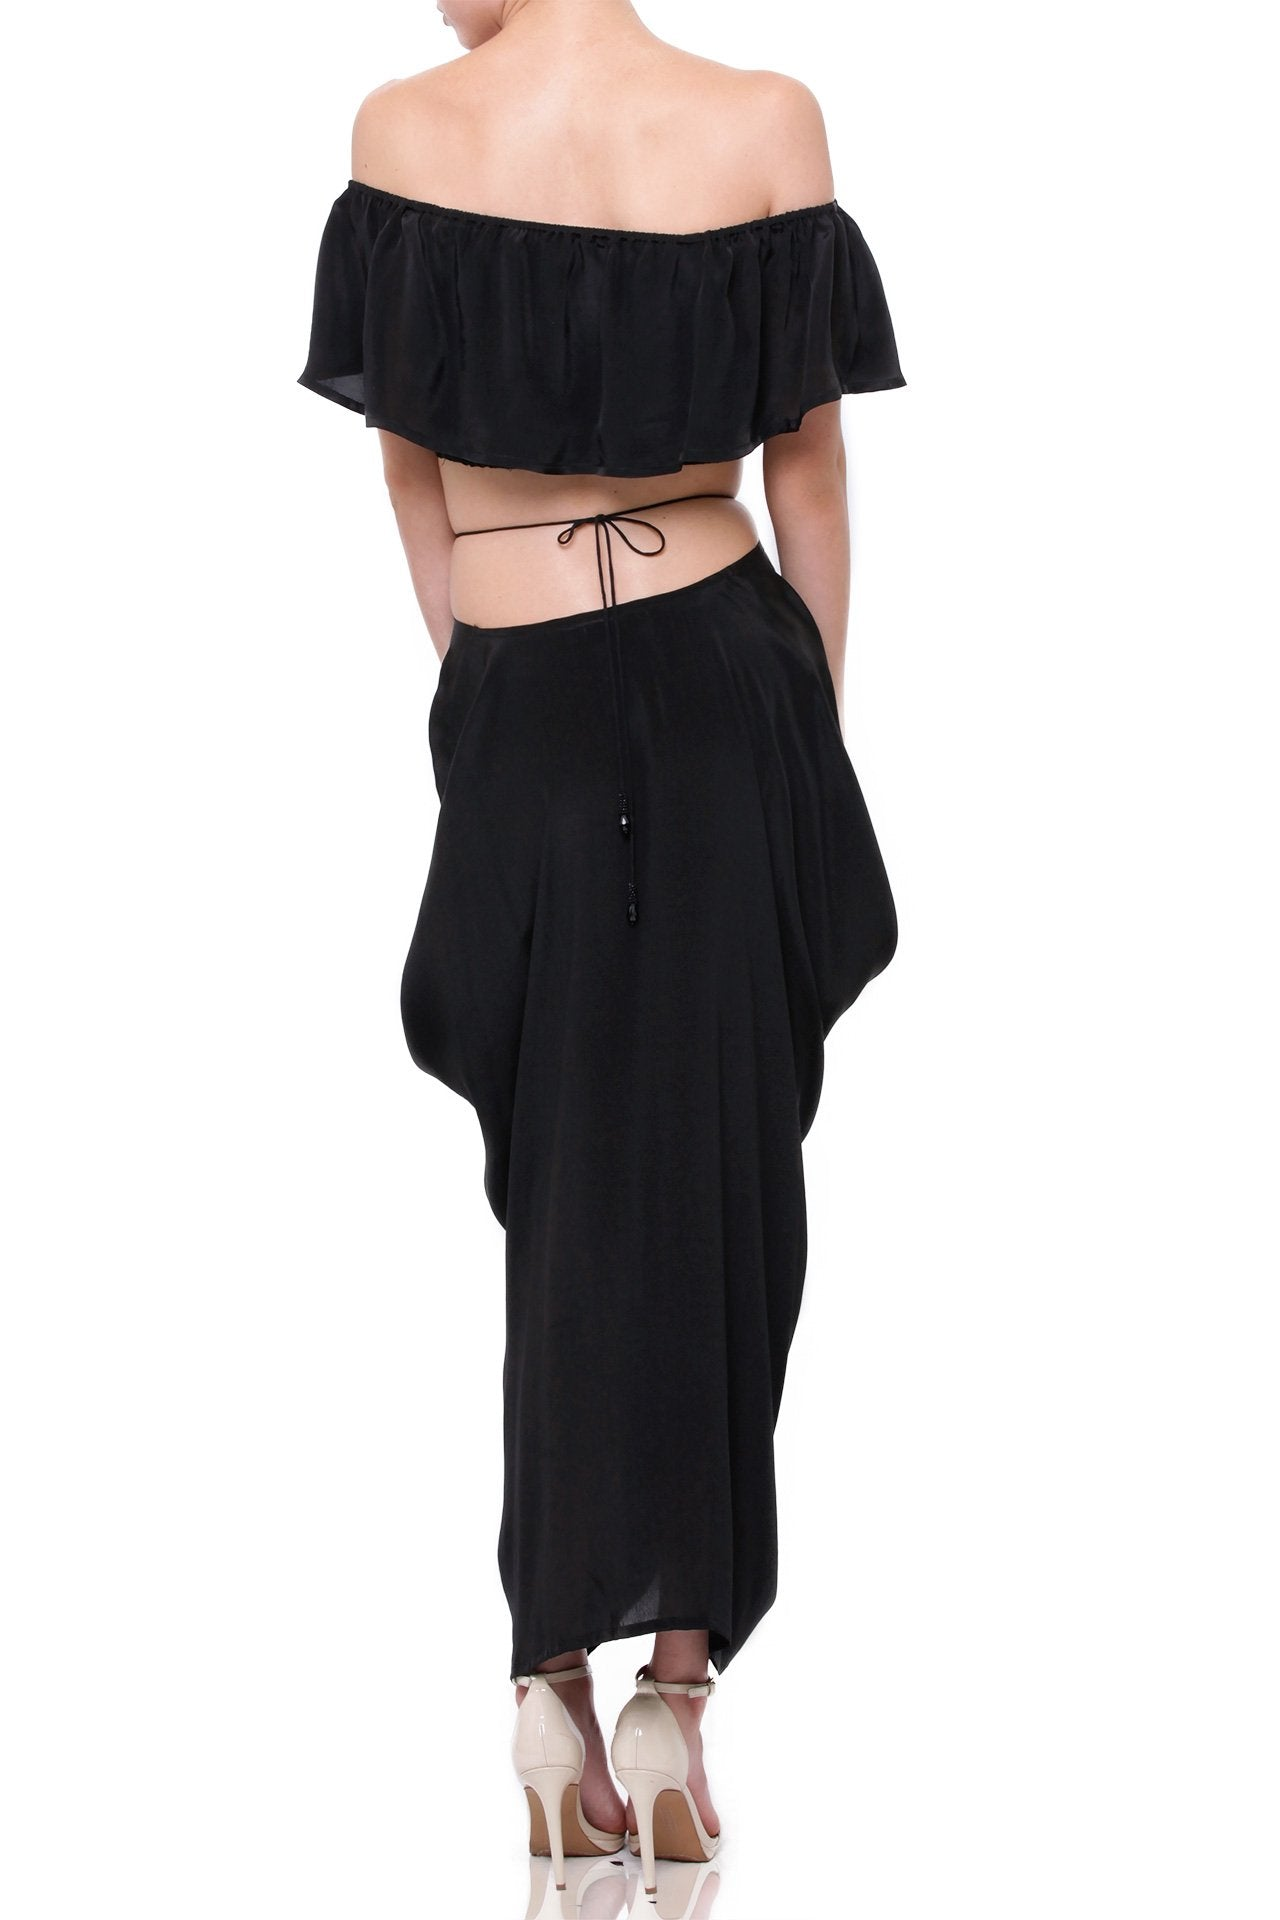 Women-Designer-Black-Crop-Top-Shahida-Parides